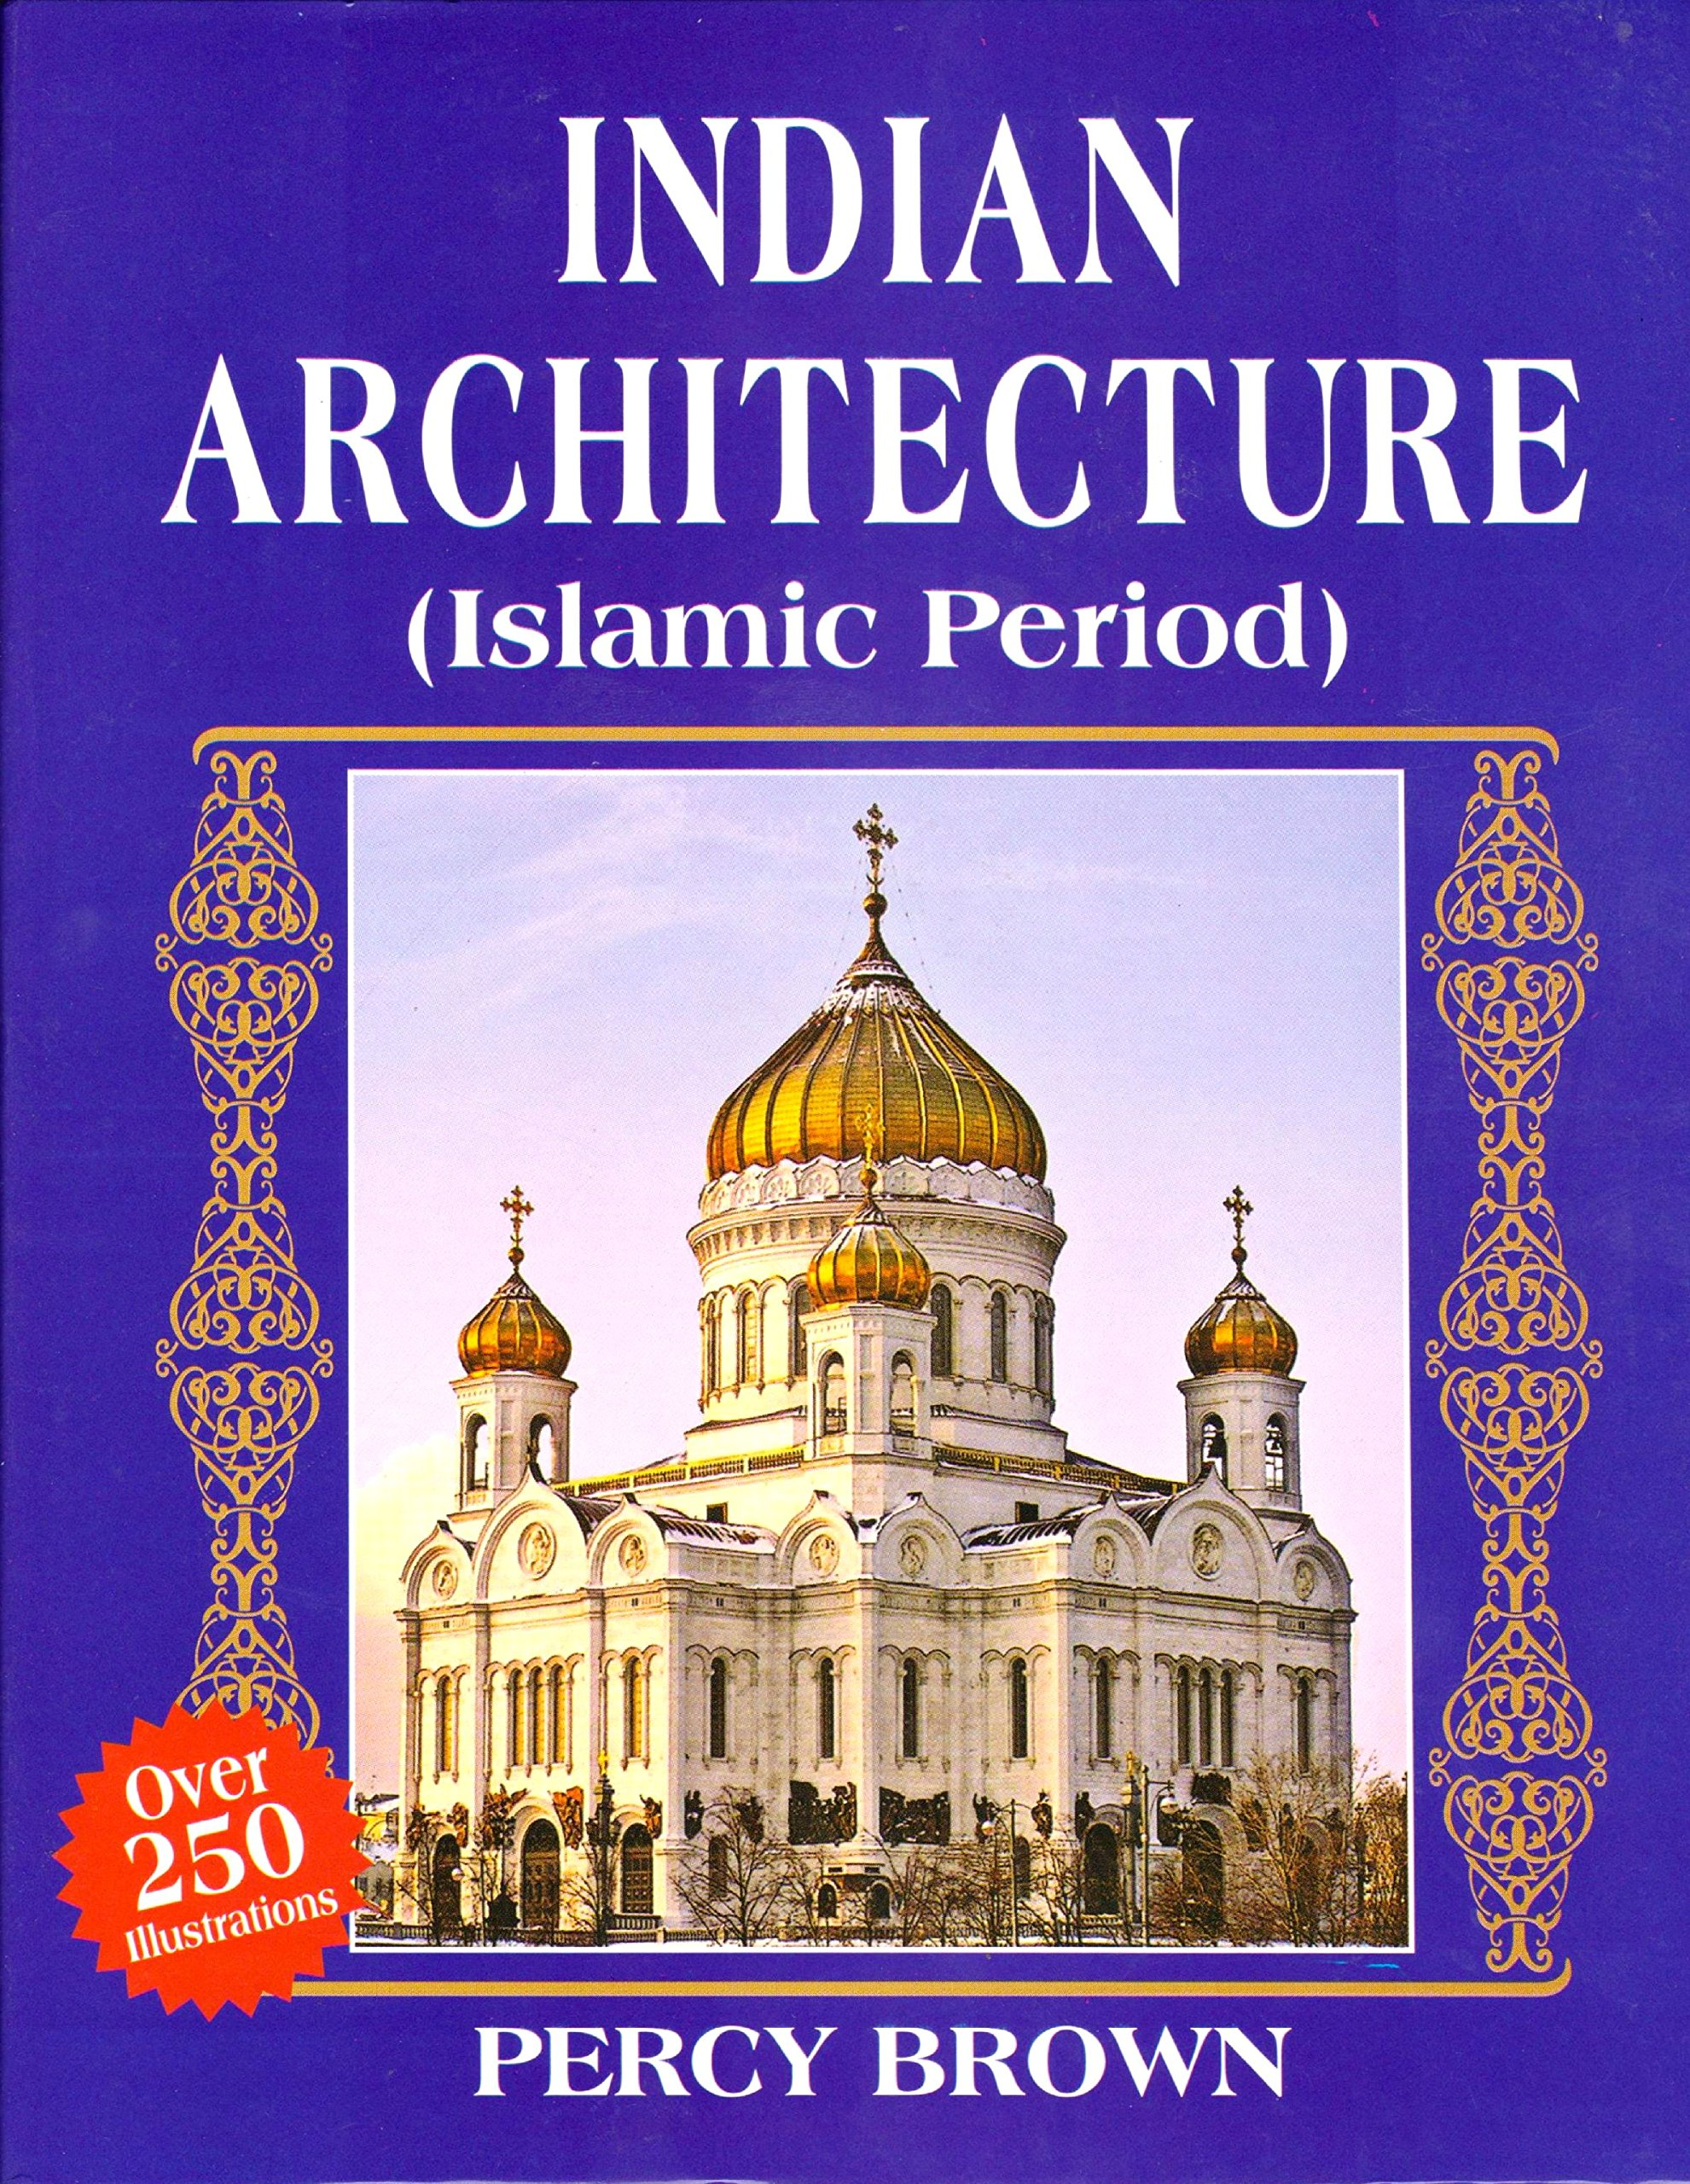 Download e-book Indian Architecture (The Islamic Period)